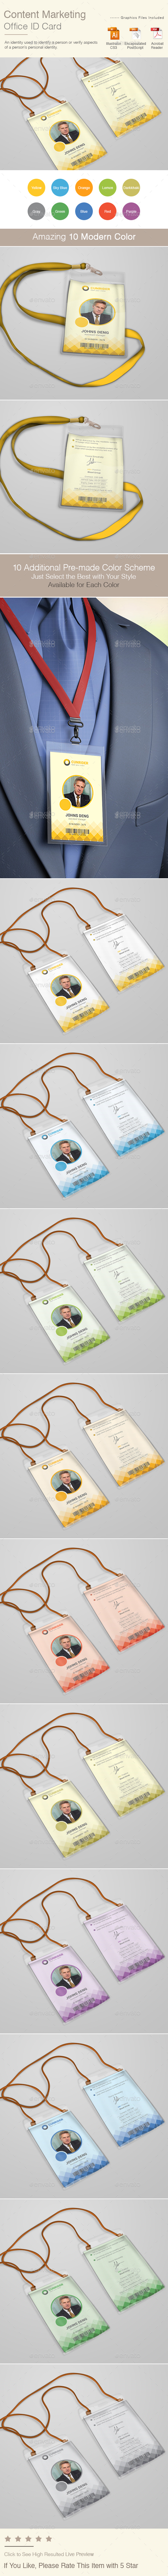 Content Marketing Office ID Card | Volume 2 - Miscellaneous Print Templates